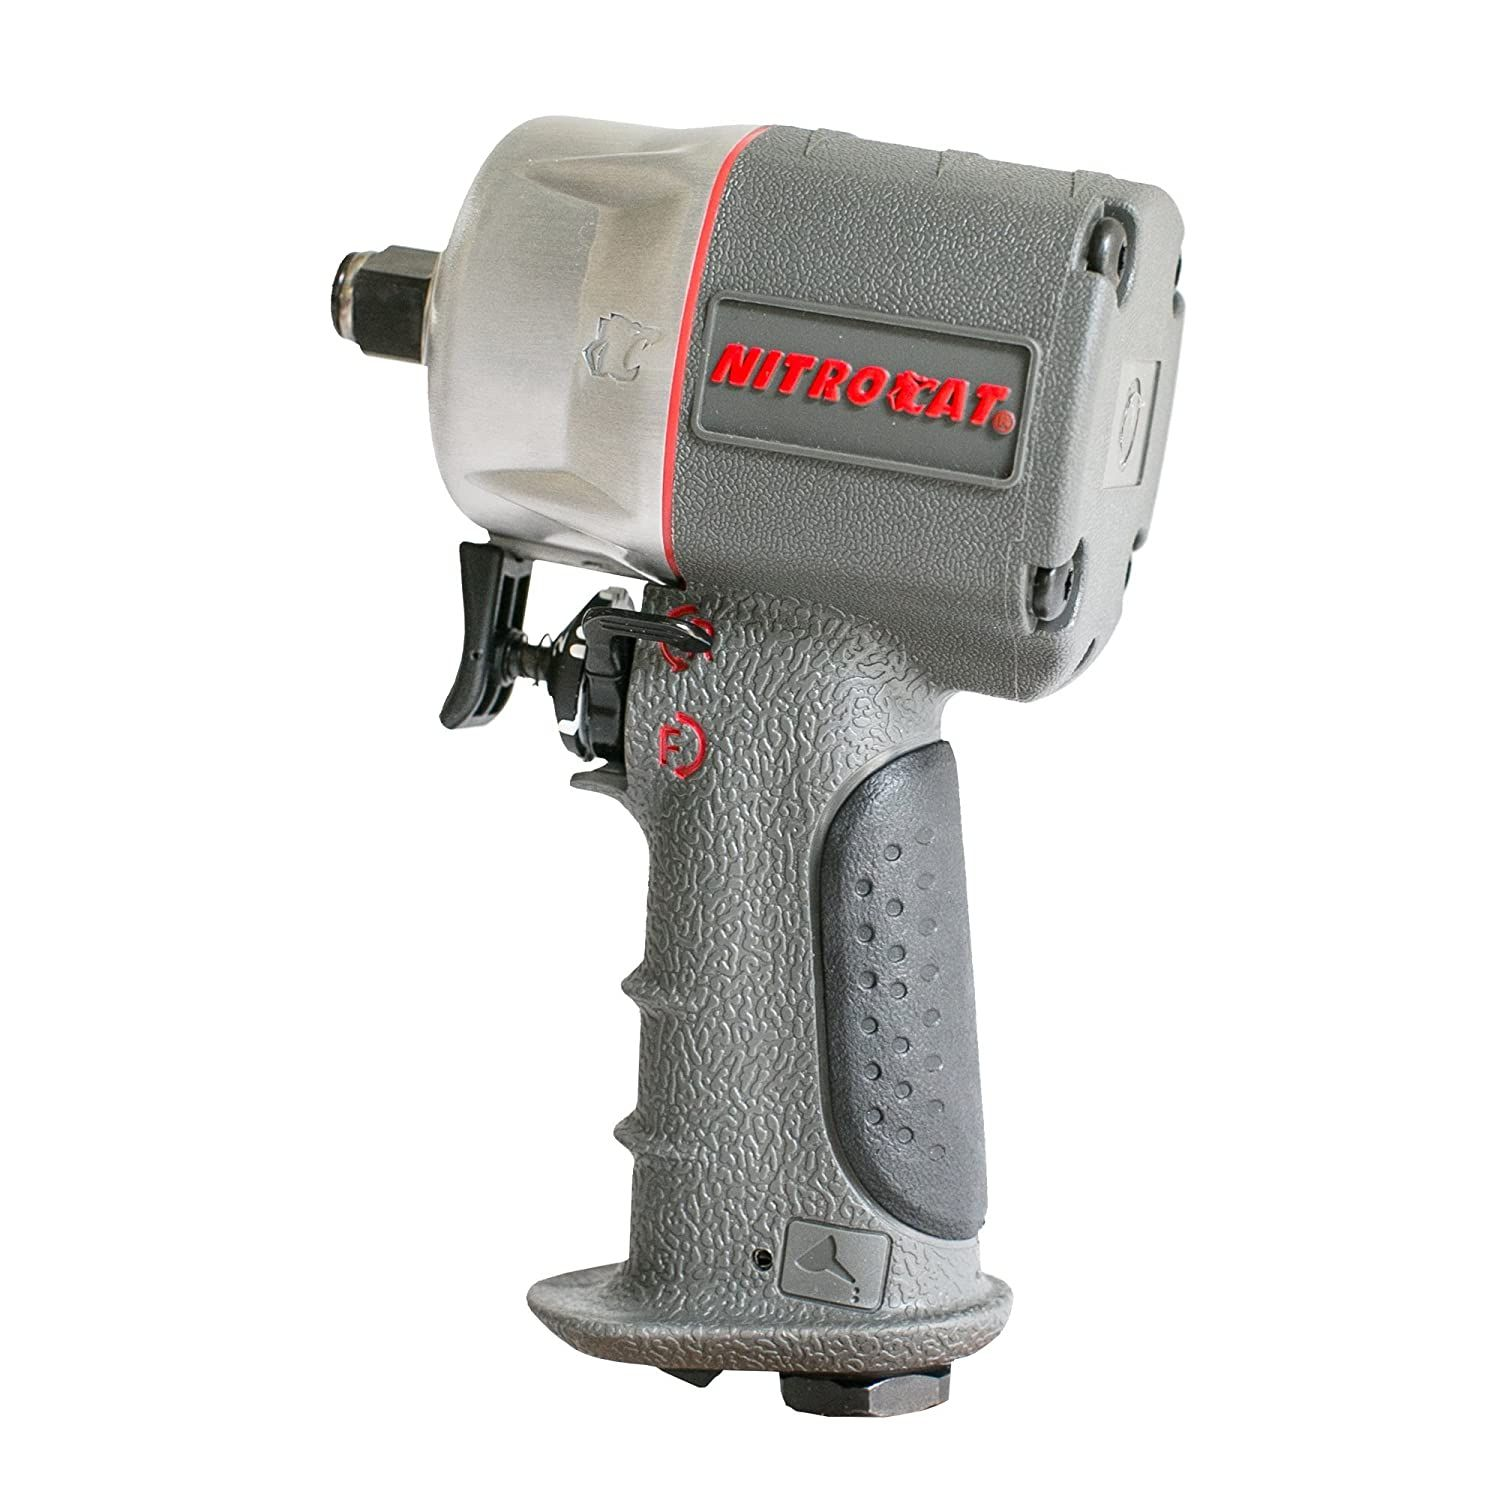 AIRCAT 1 2 Compact Composite Impact Wrench in 2020